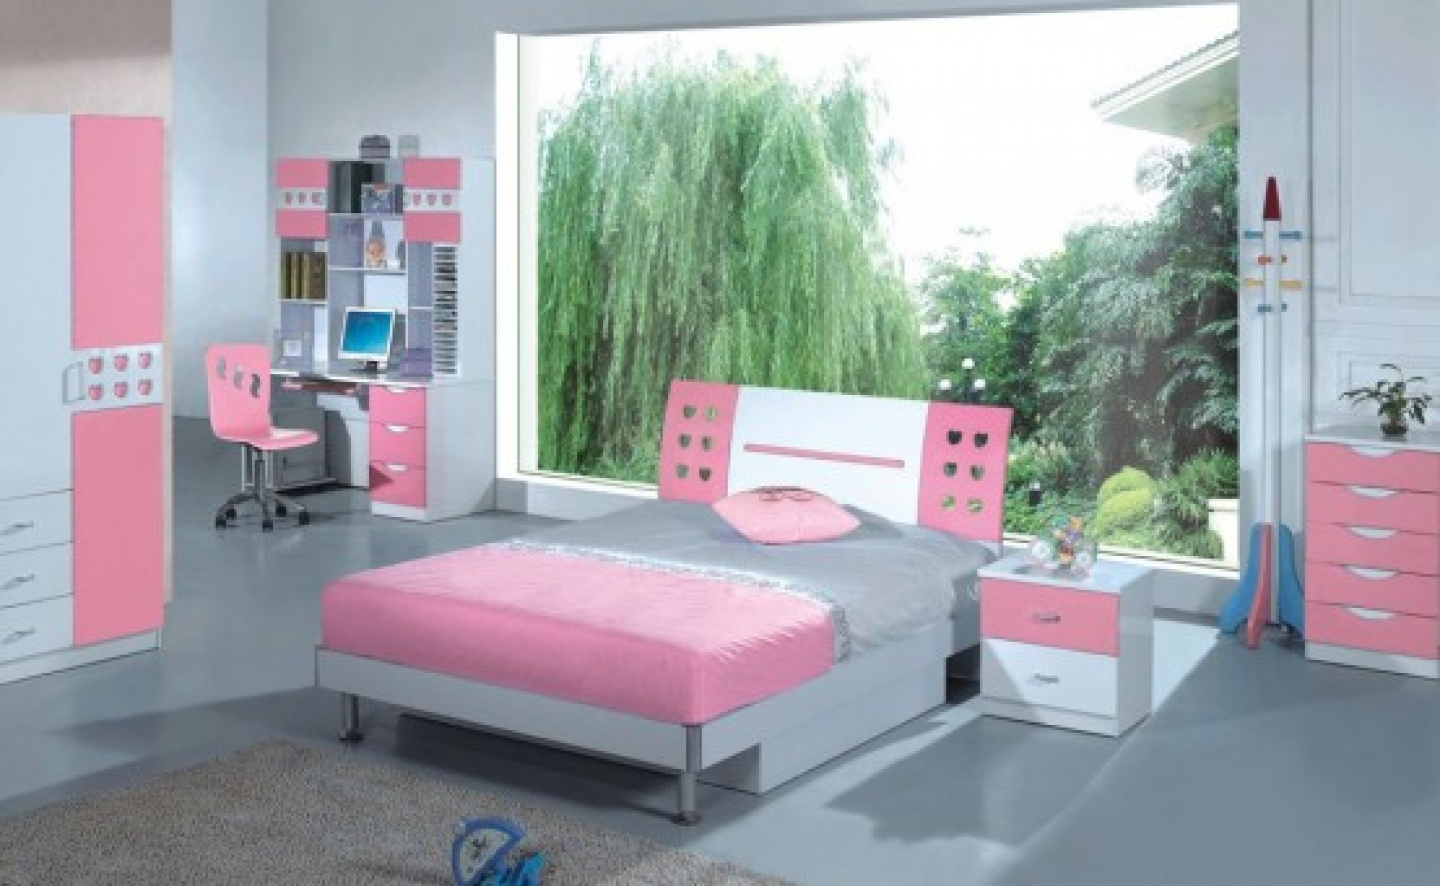 Bon Witching Pink Teenage Bedroom Ideas With Nature Background And Cute Stuffs